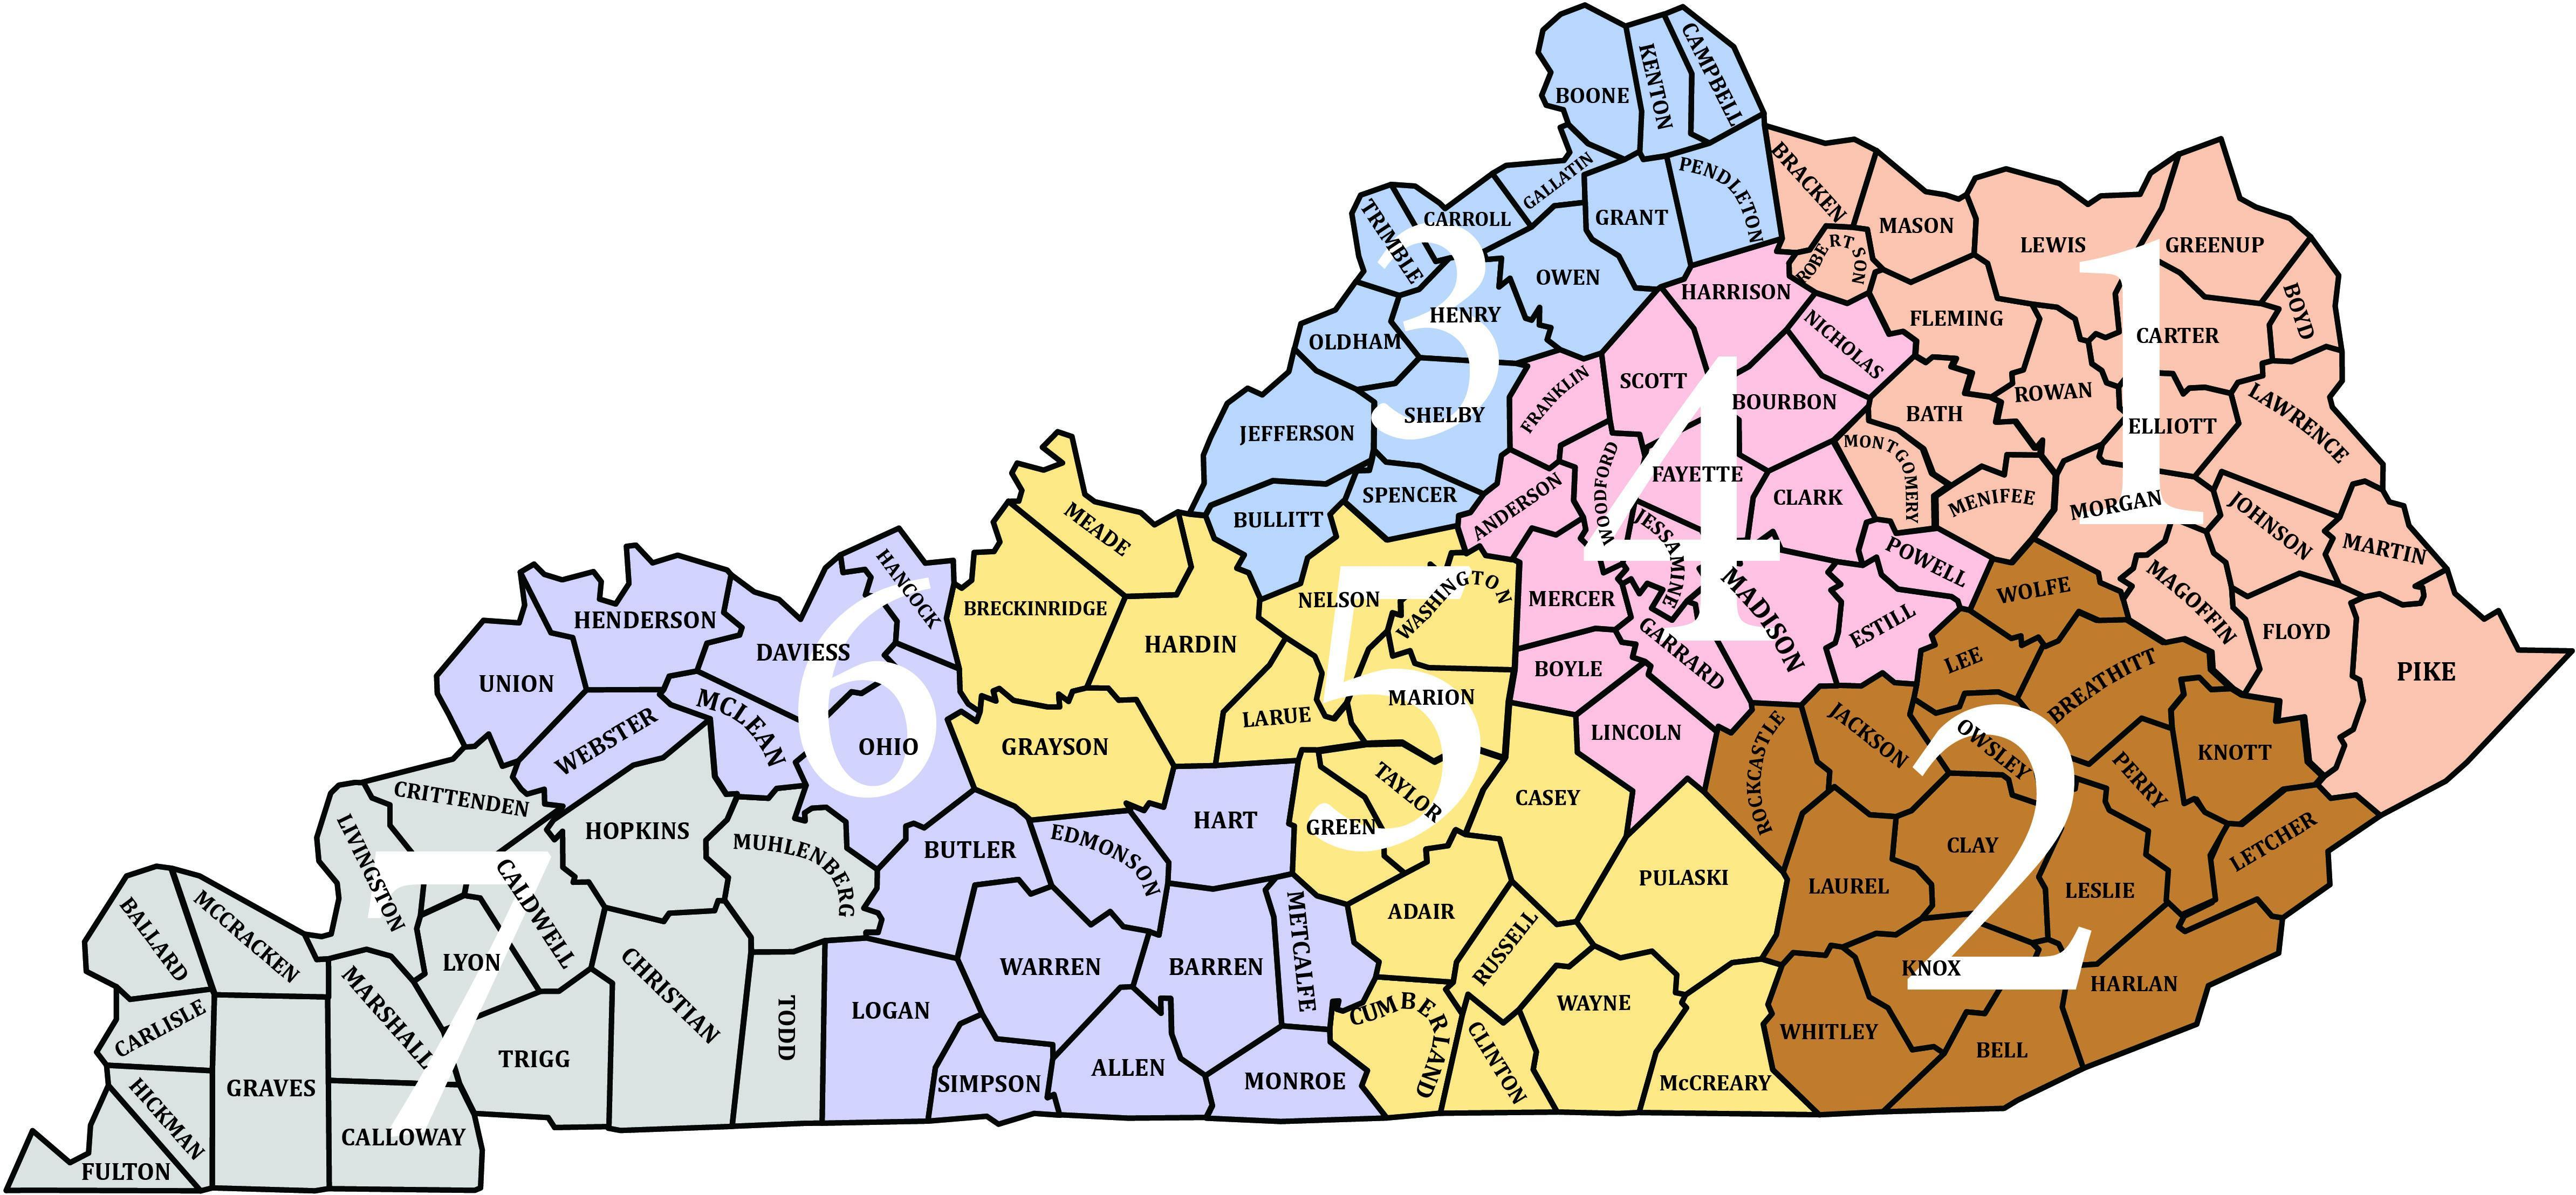 counties of kentucky map Counties Extension counties of kentucky map